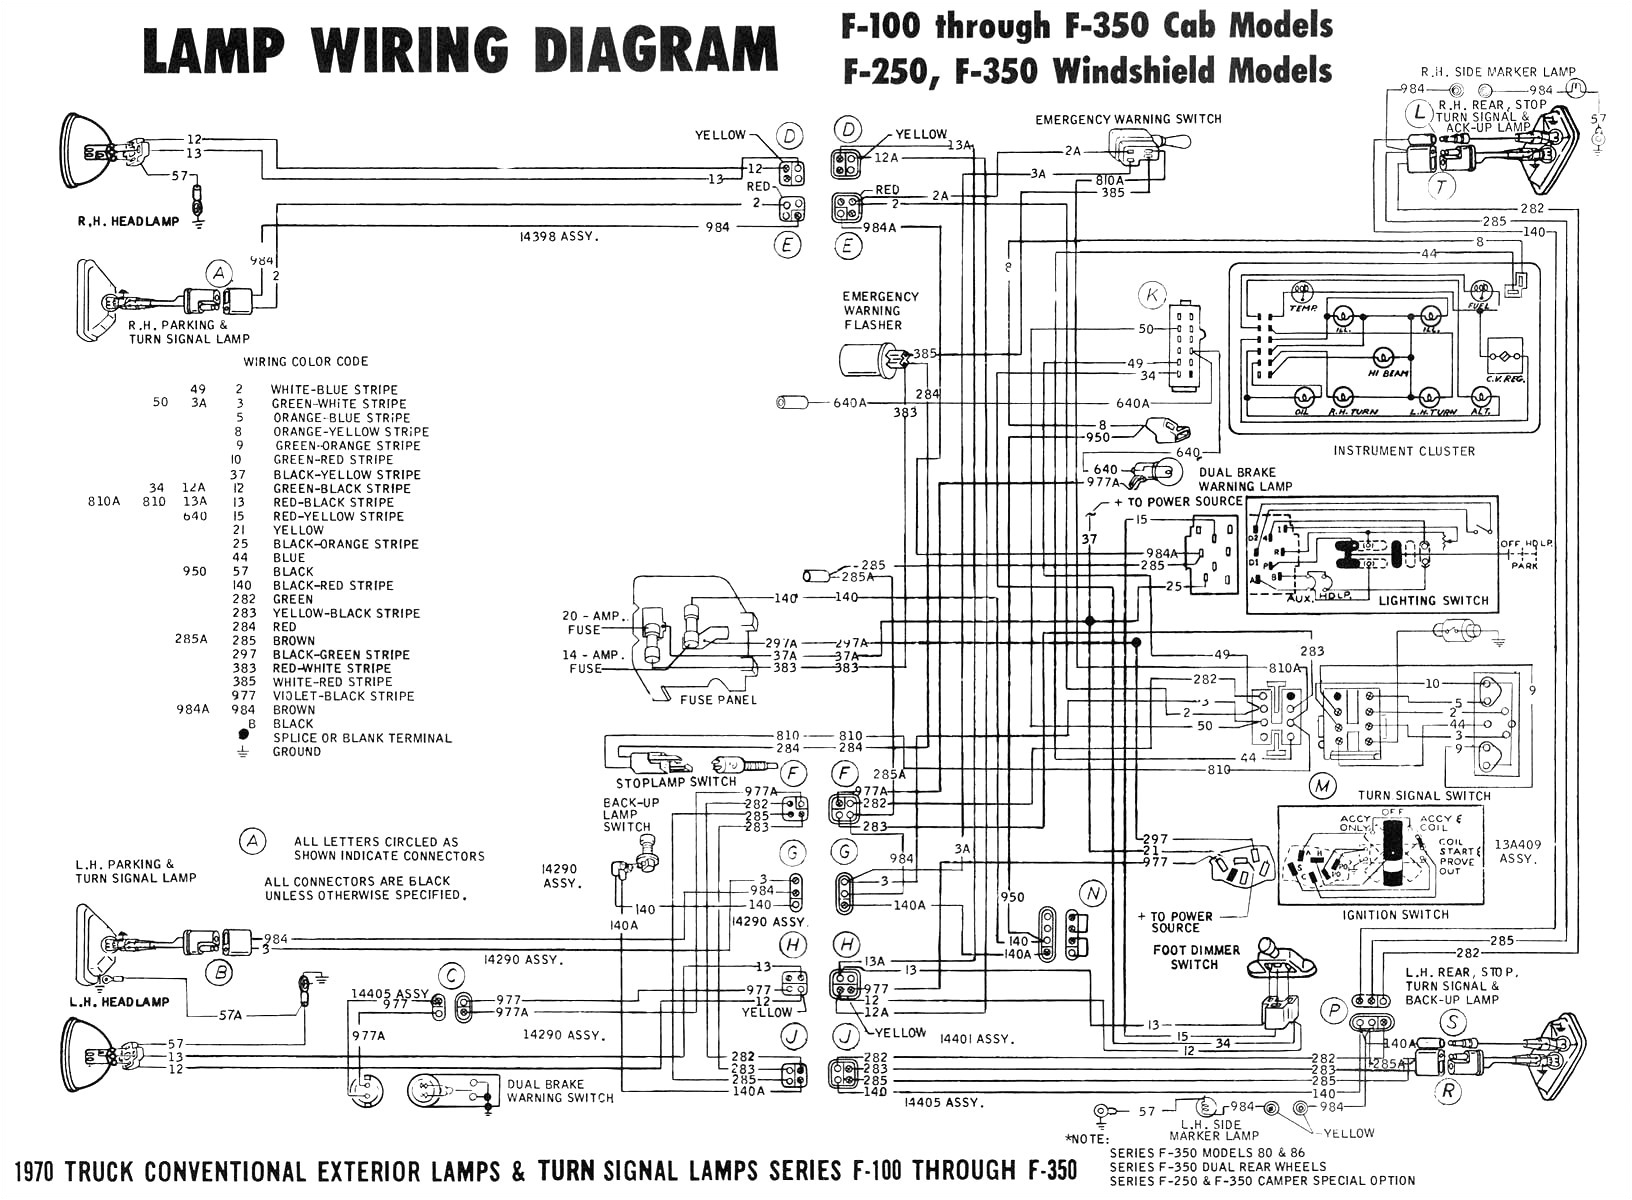 04 f250 wiring diagram wiring diagrams for wiring diagram color code furthermore 2008 ford f 250 mirror wiring